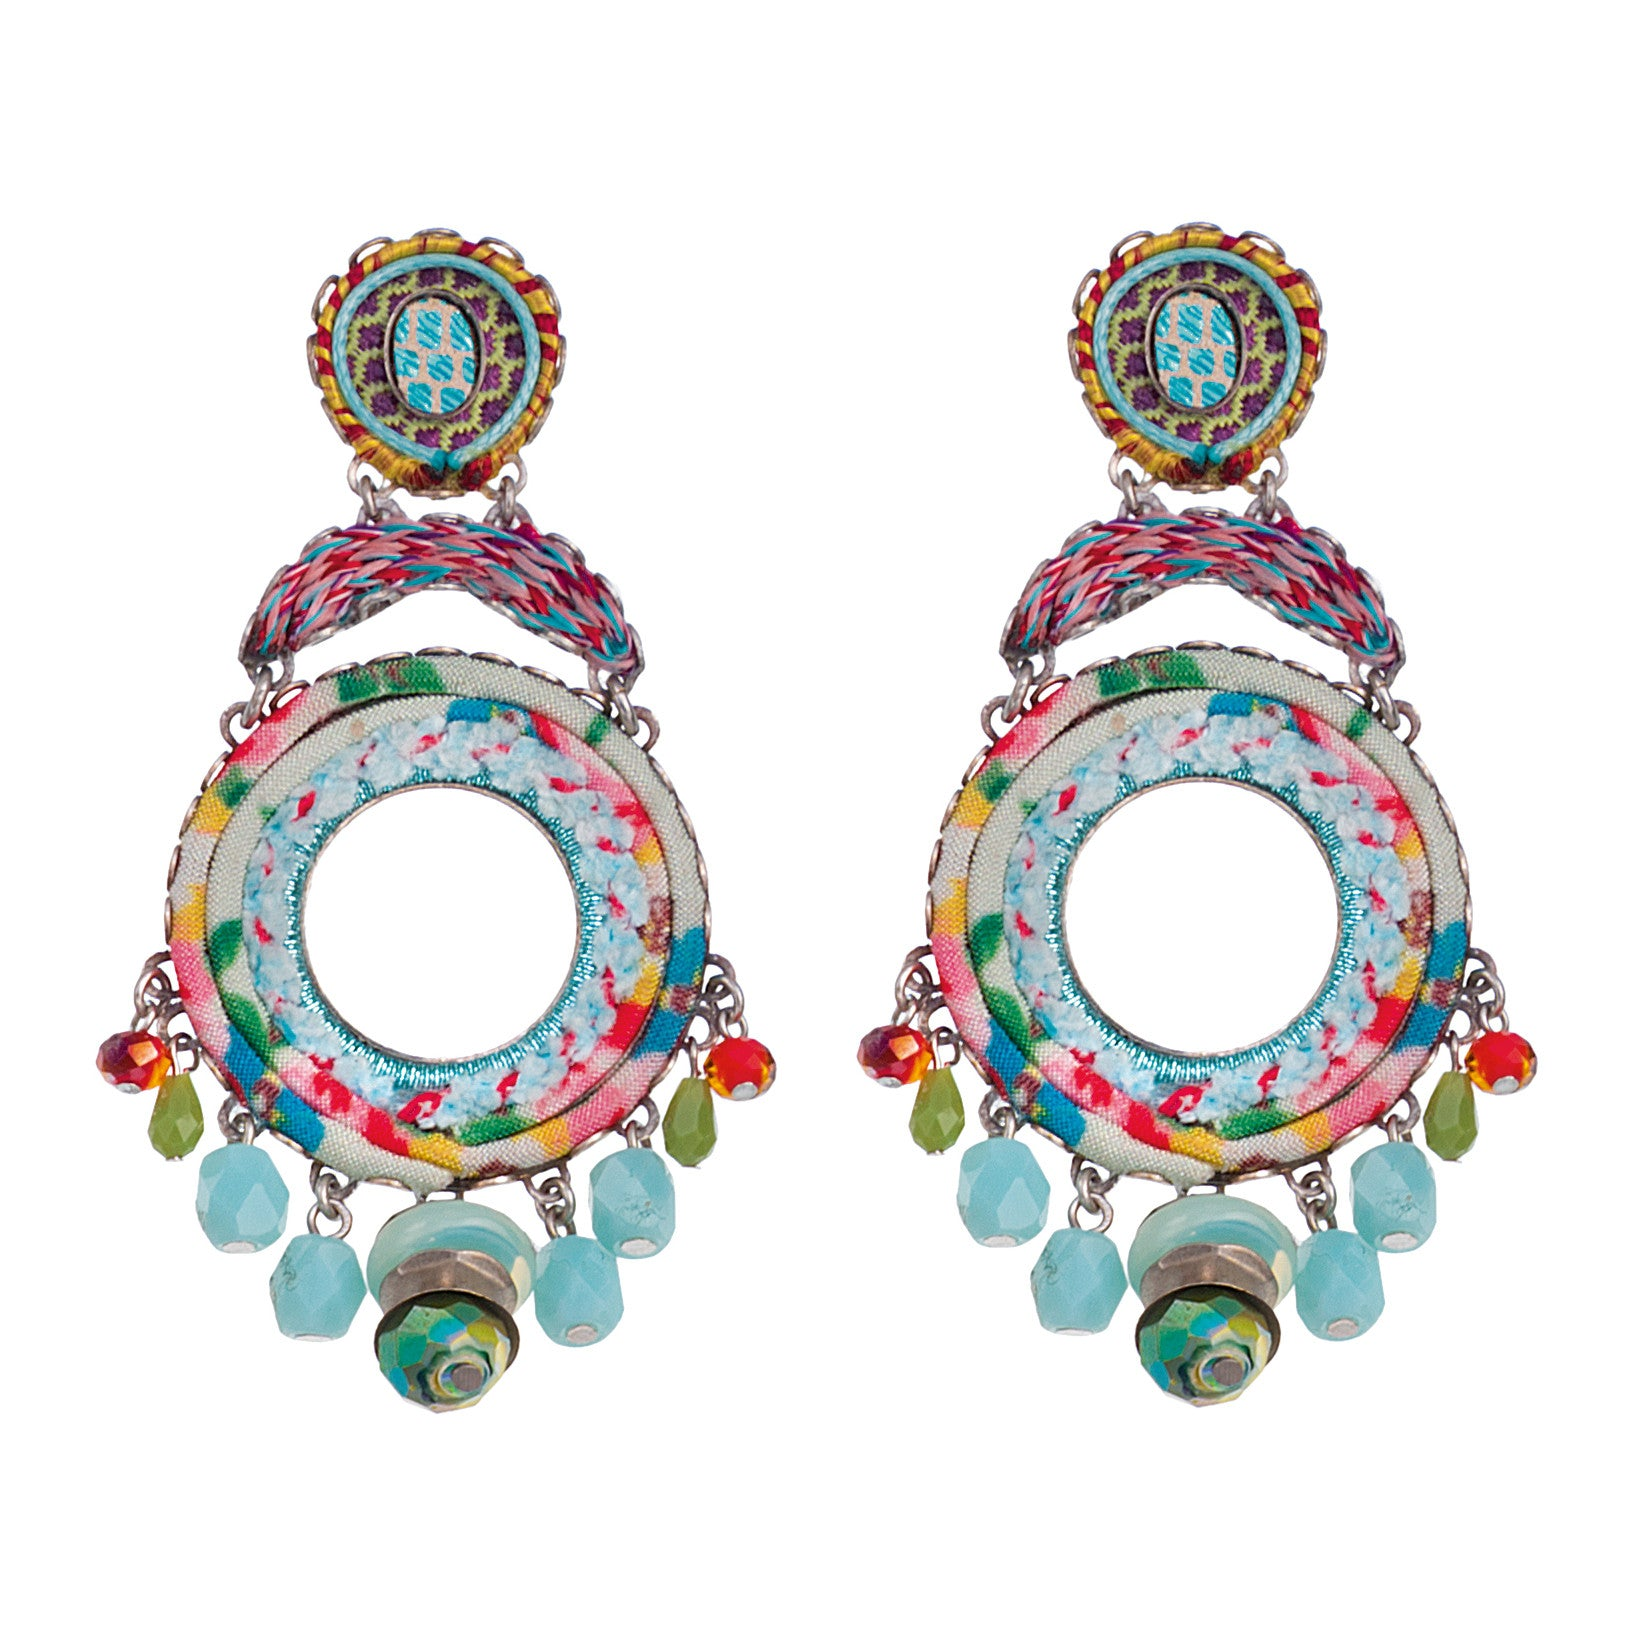 Florence 7476 Earrings